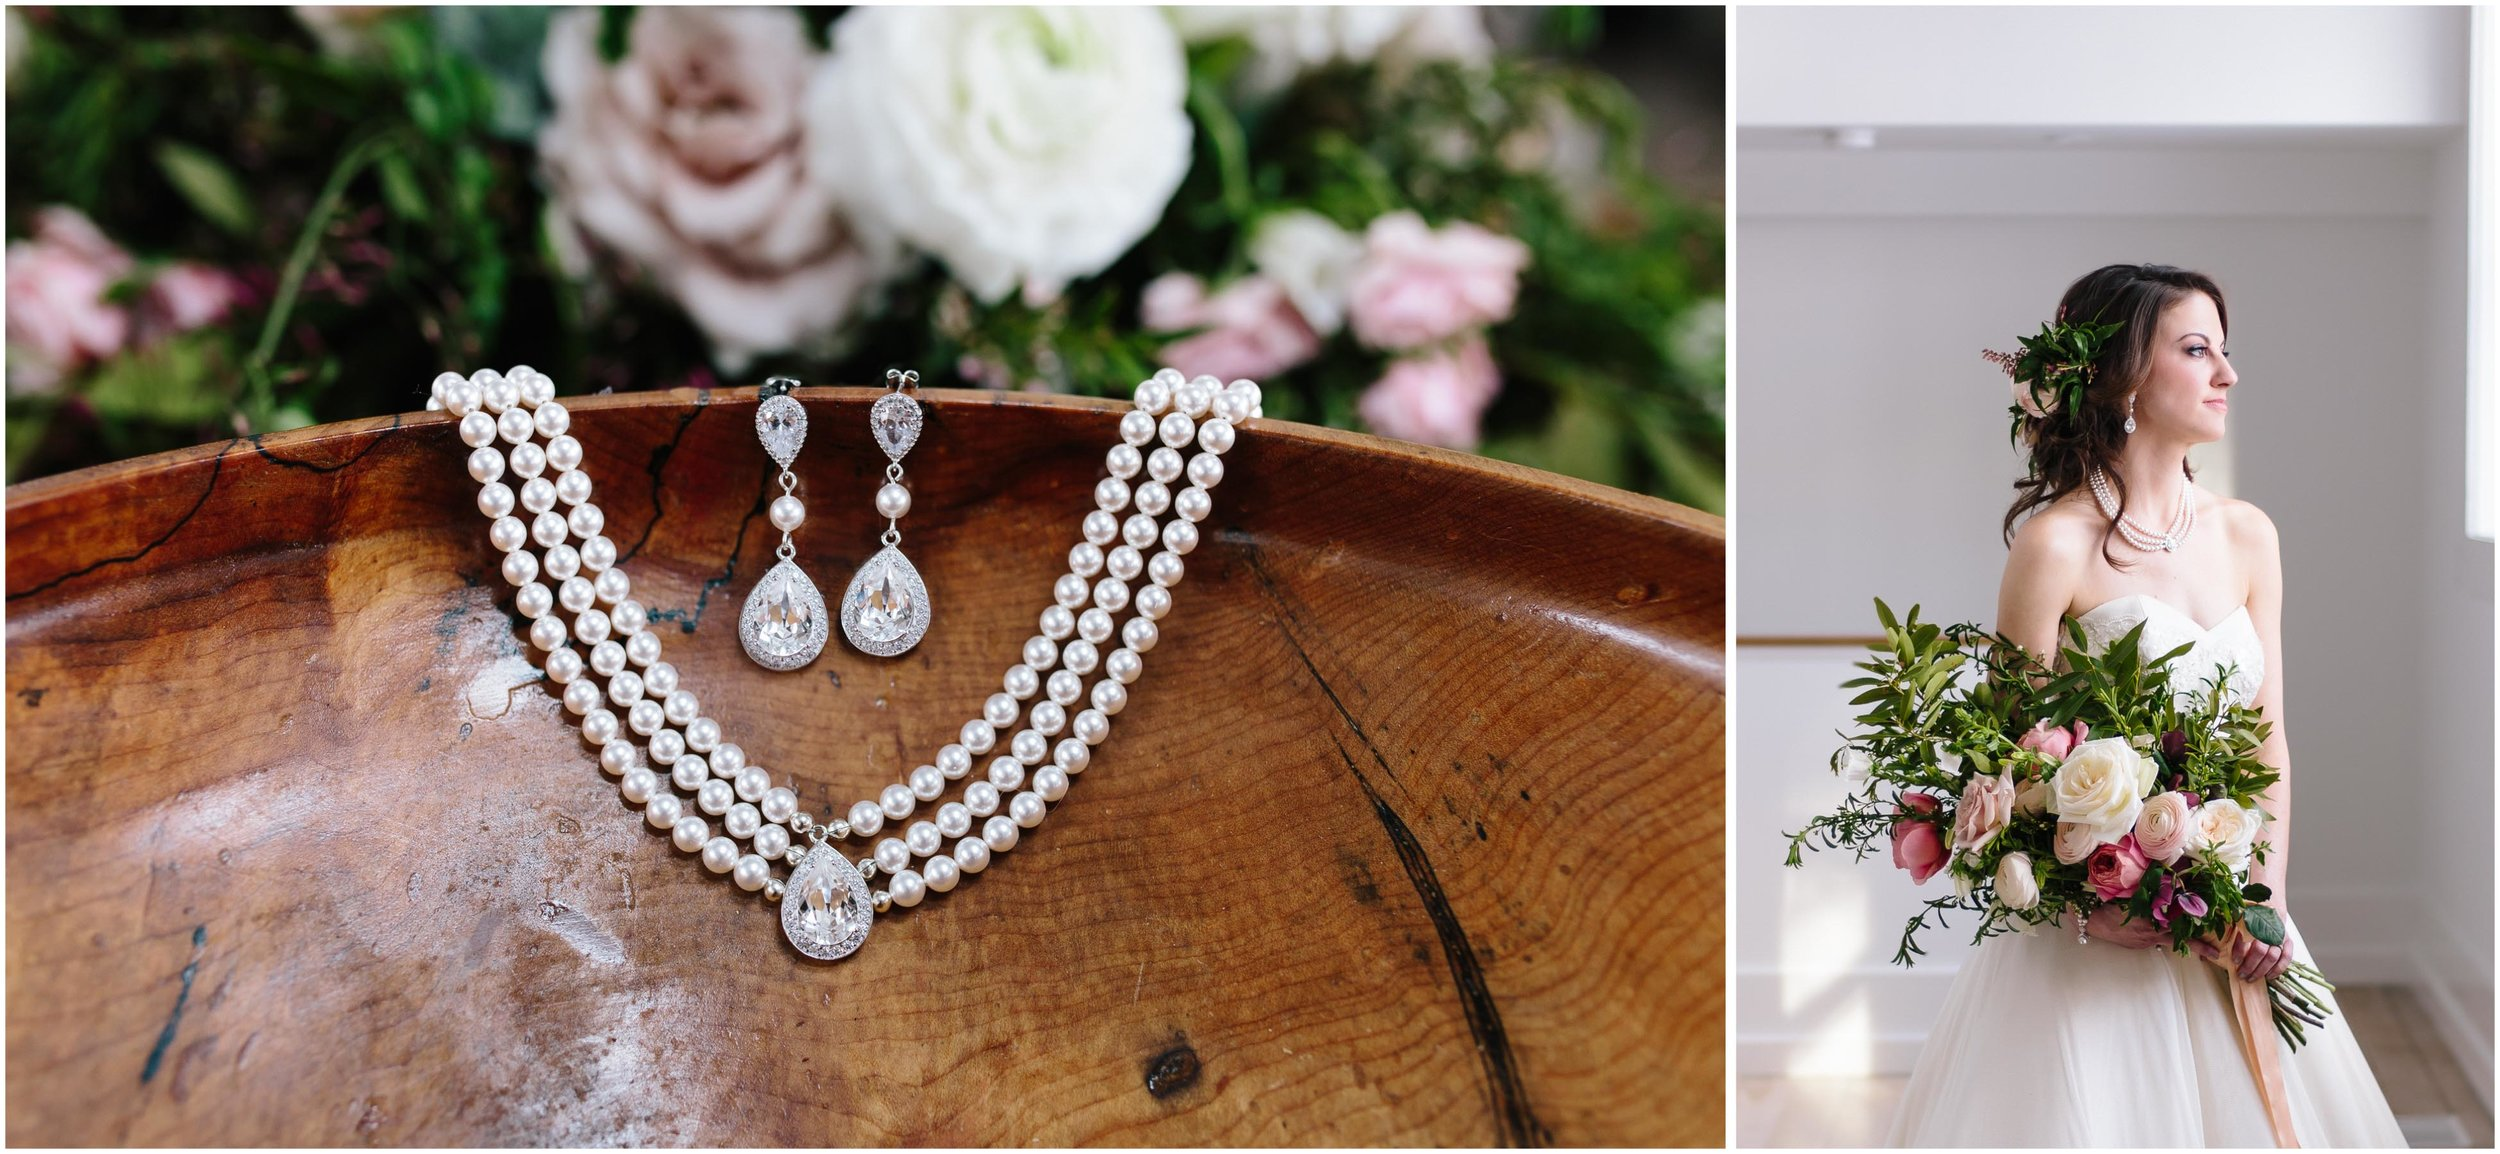 Intimate and romantic styled wedding photography in Lee, Massachusetts in the Berkshires - bride and jewelry